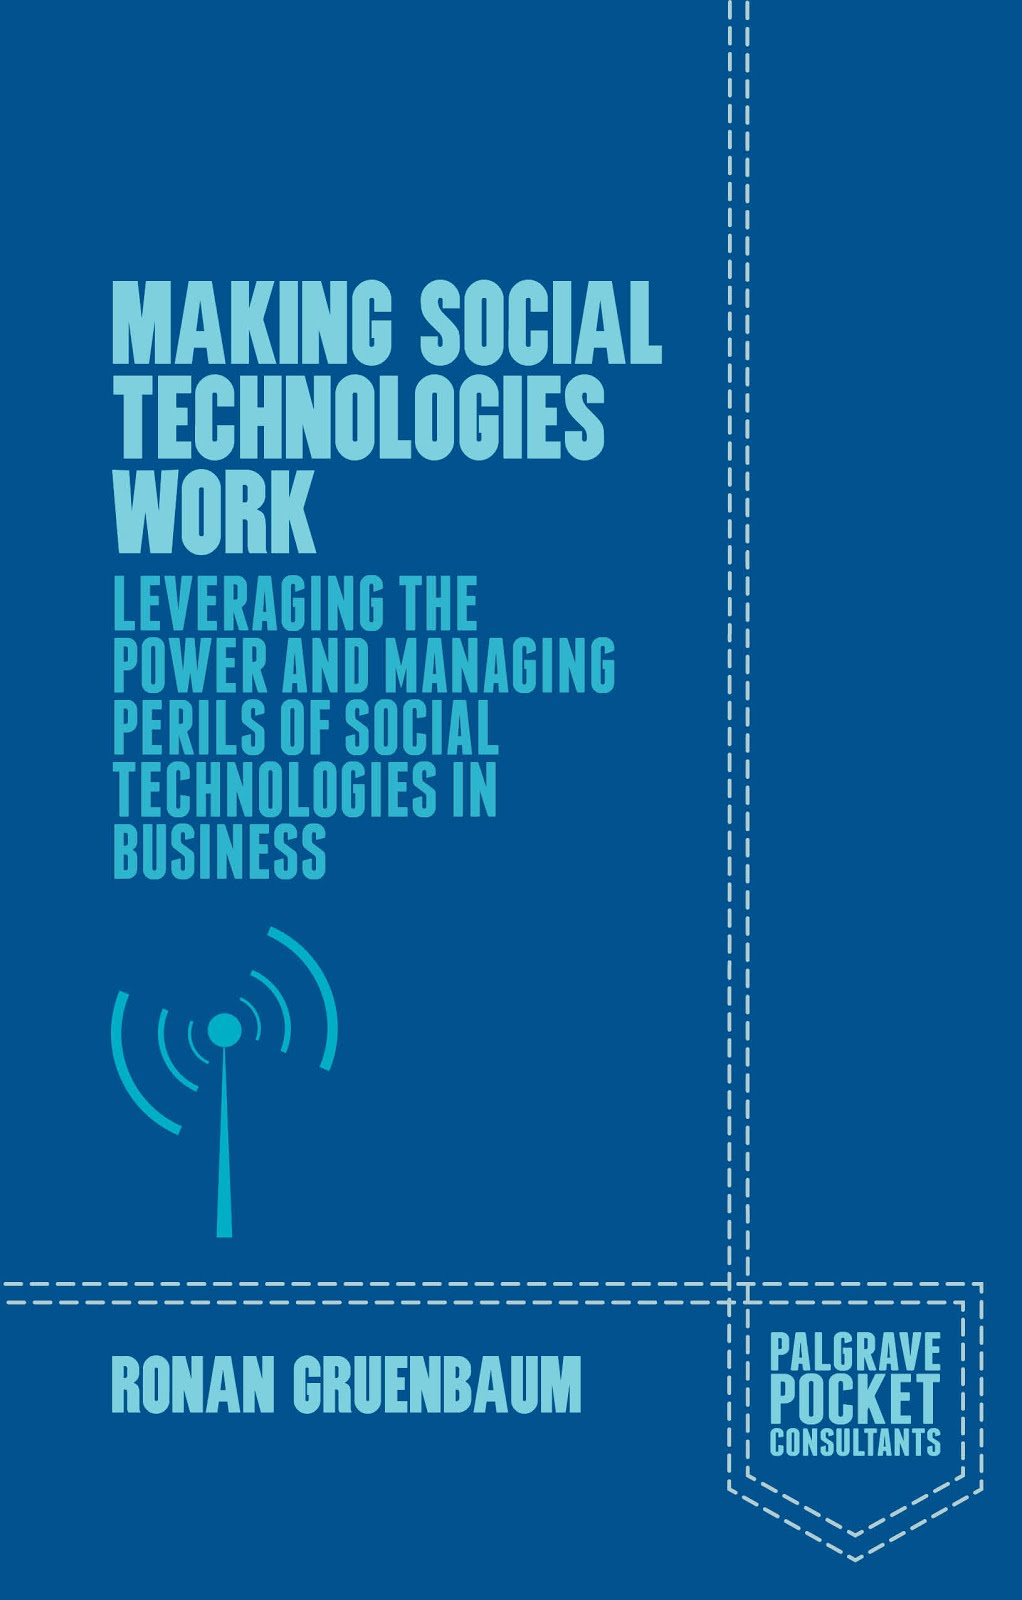 Making Social Technologies Work